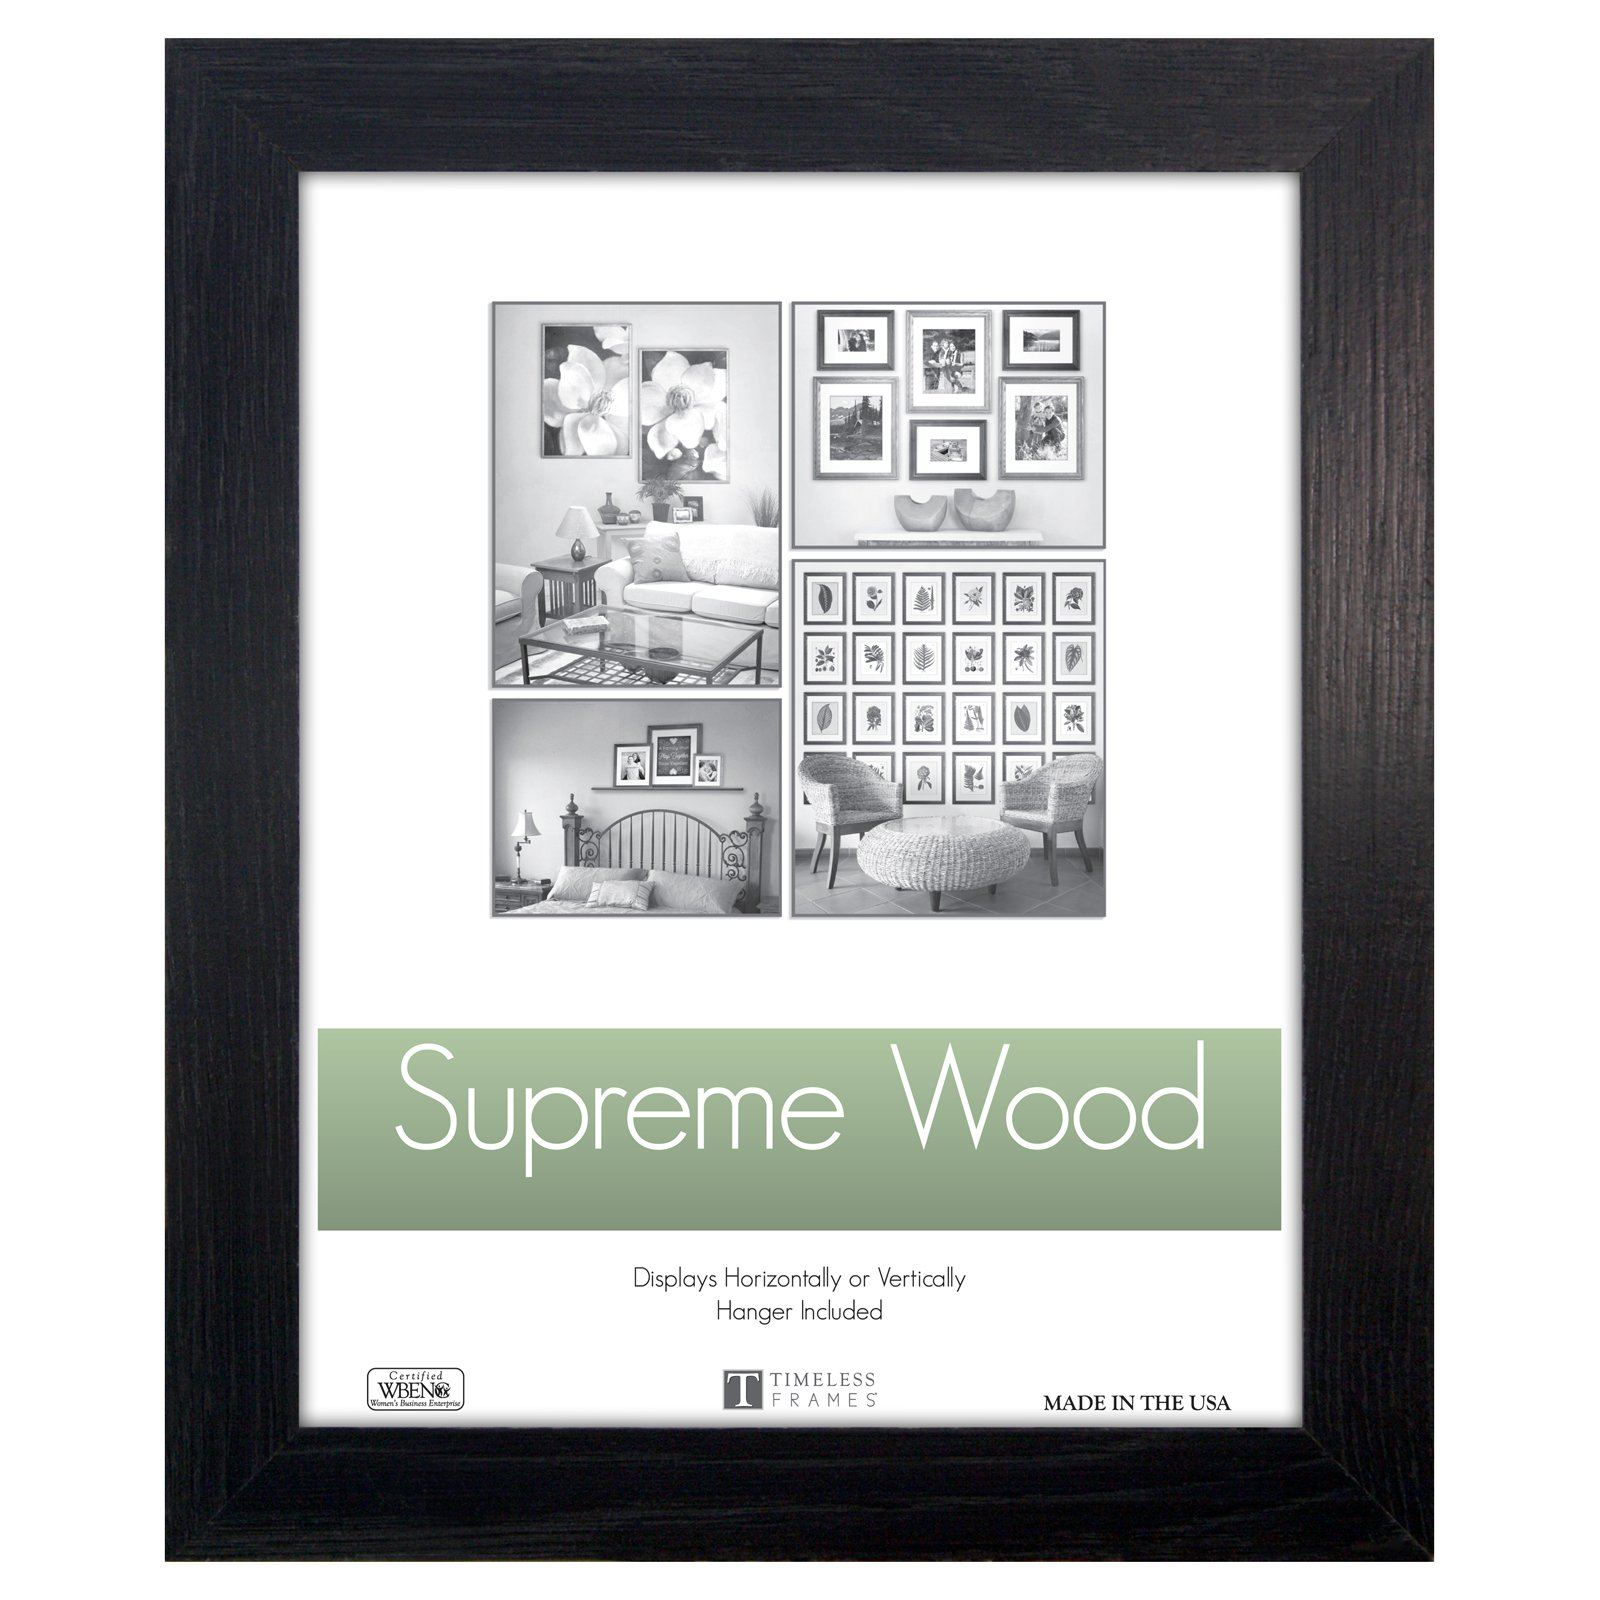 Timeless Frames Regal Picture Frame